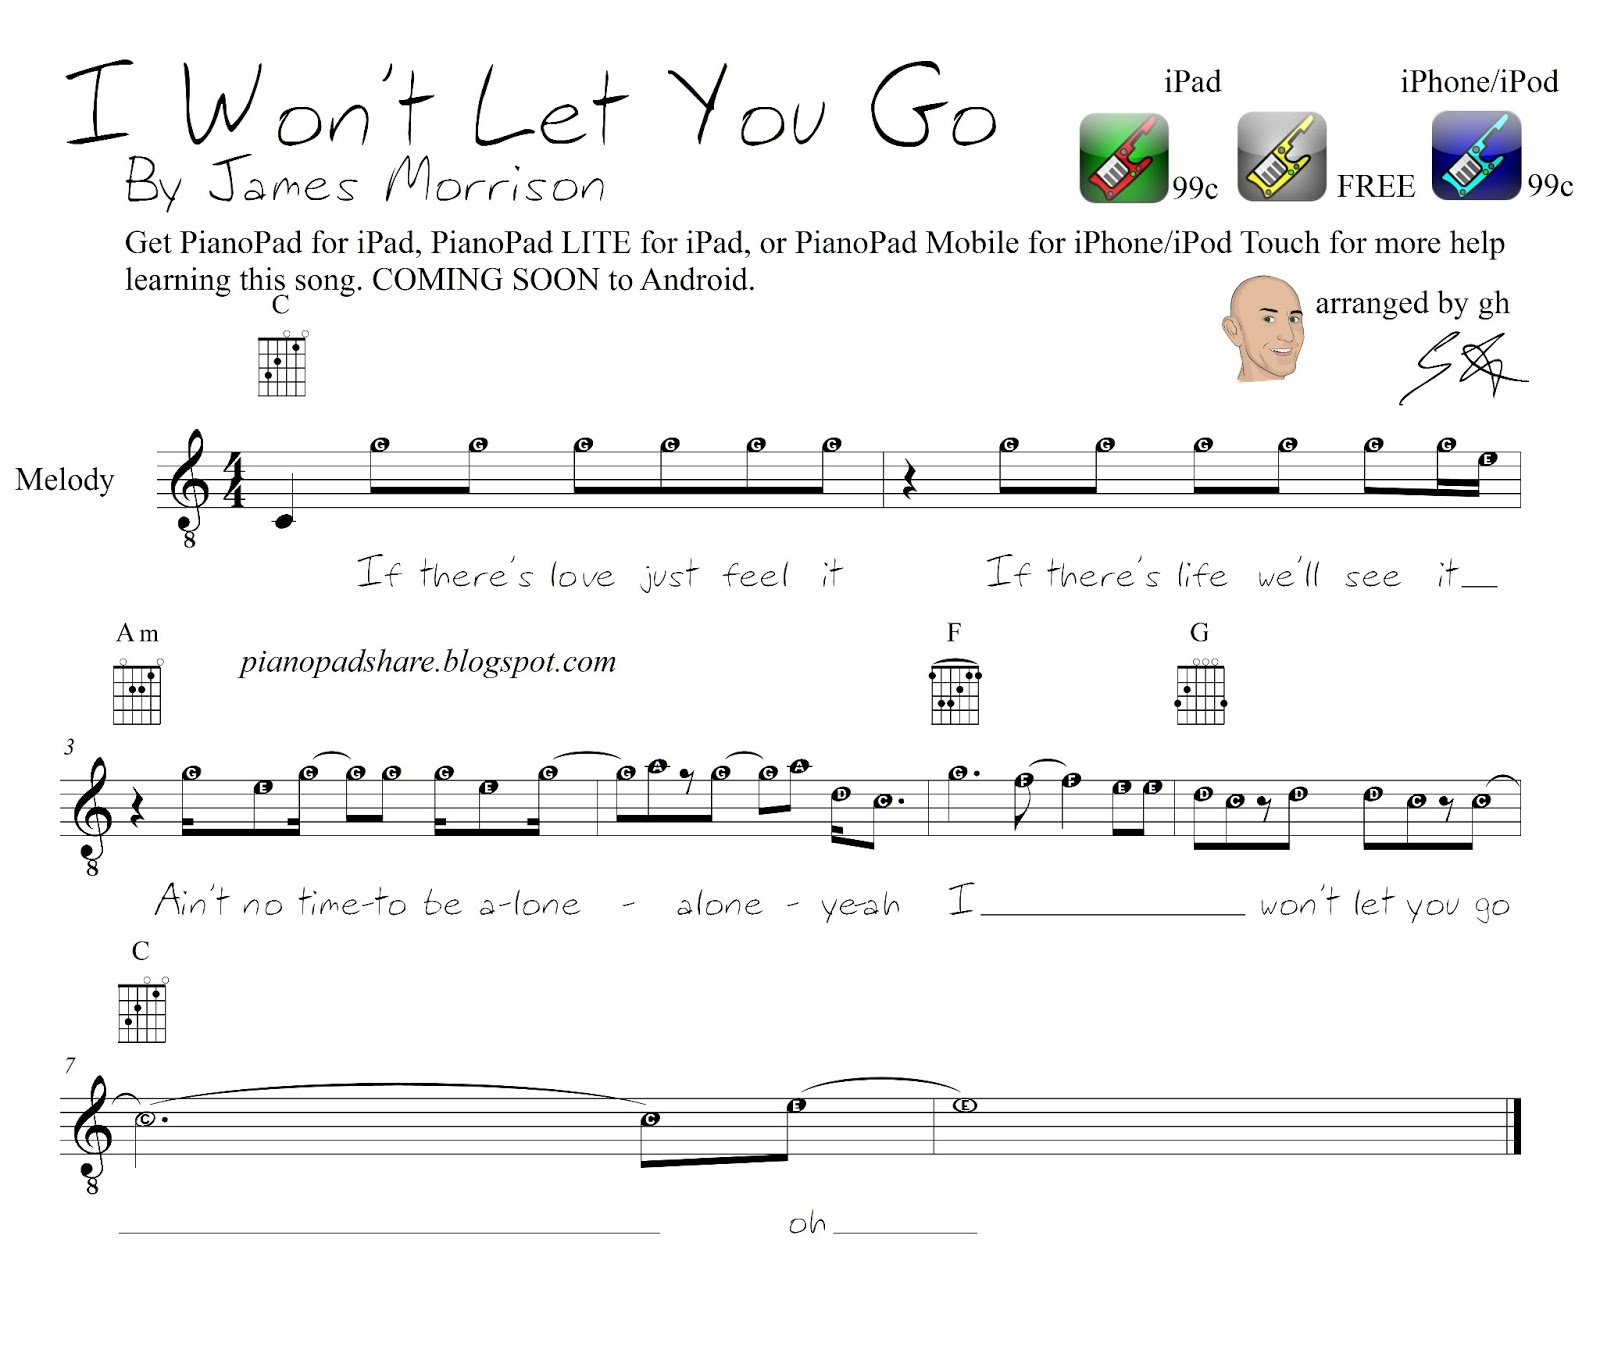 http://4.bp.blogspot.com/-zcvkHsQS-KY/UPKBqbcgZ4I/AAAAAAAABbA/S9nIk8VHsys/s1600/James+Morrison+-+I+Won\'t+Let+You+Go+-+Sheet+Music+-+piano+guitar+chords+easy+with+letters+for+pianopad+app+users.jpg